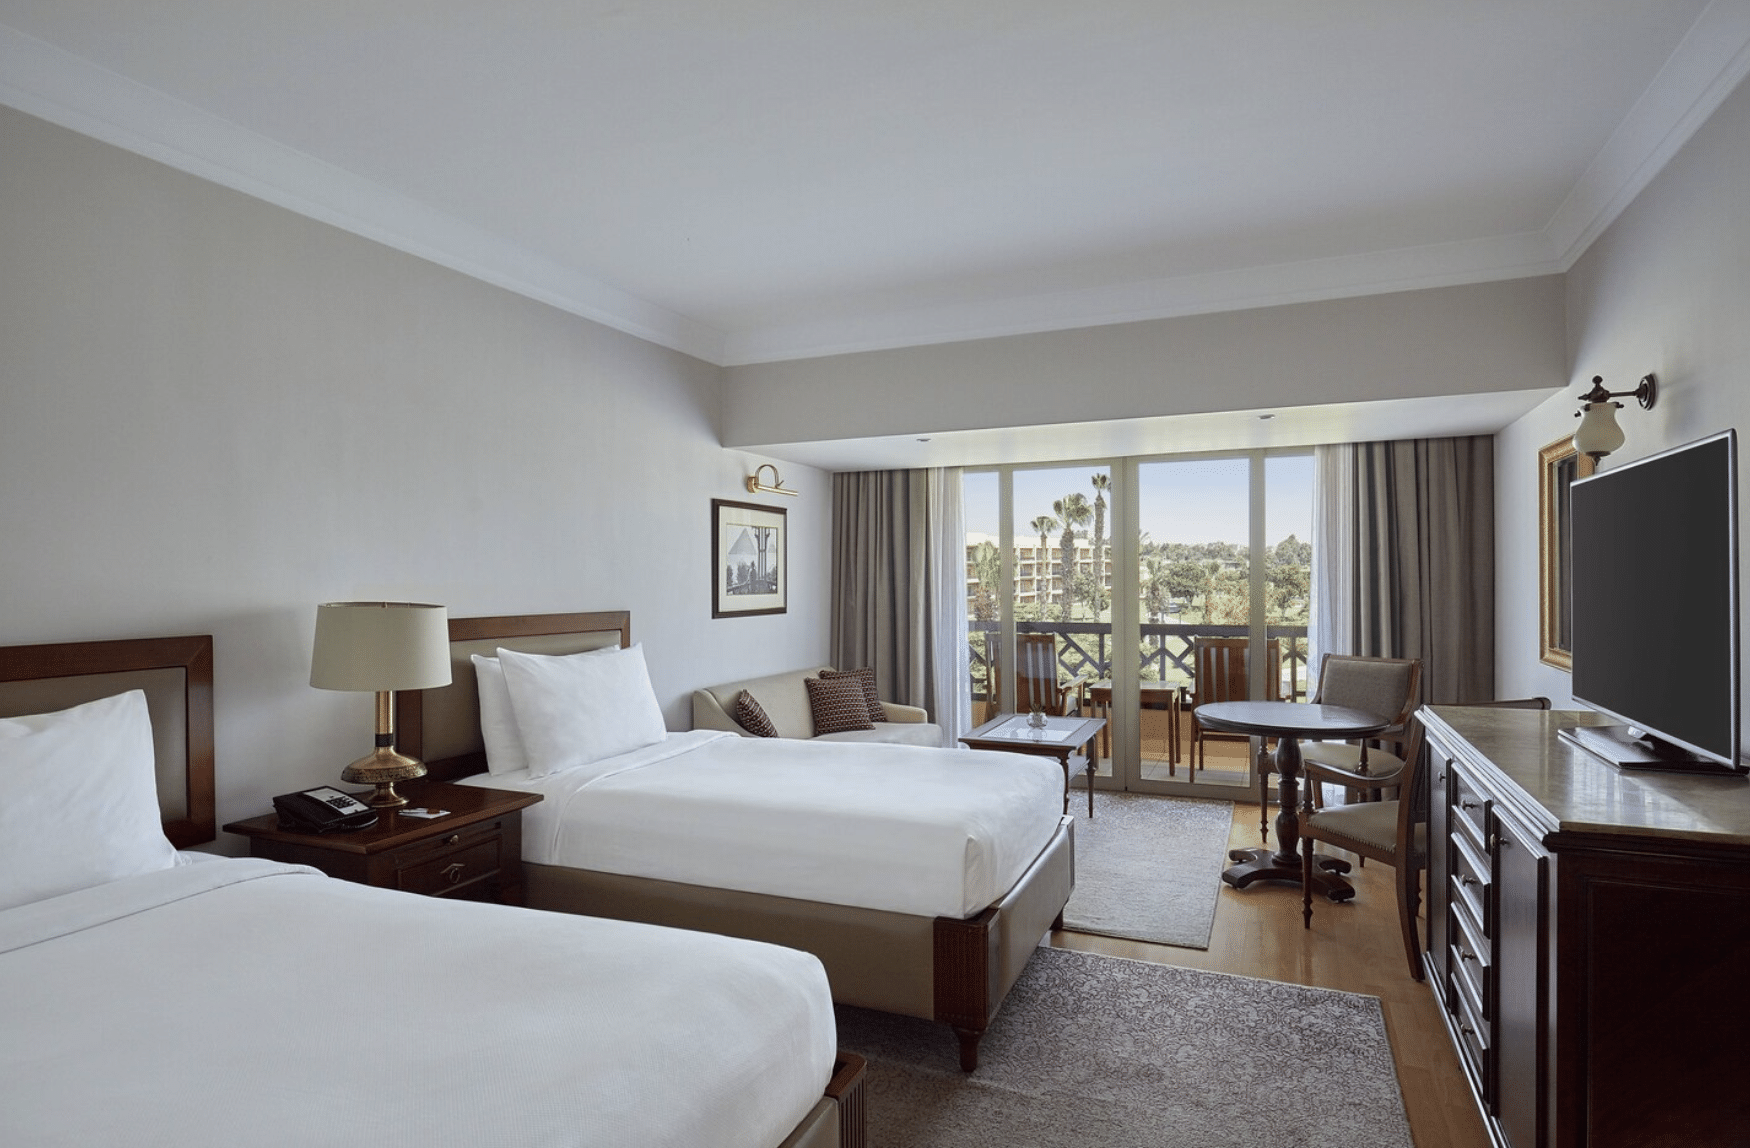 Marriott Mena House Cairo Rooms